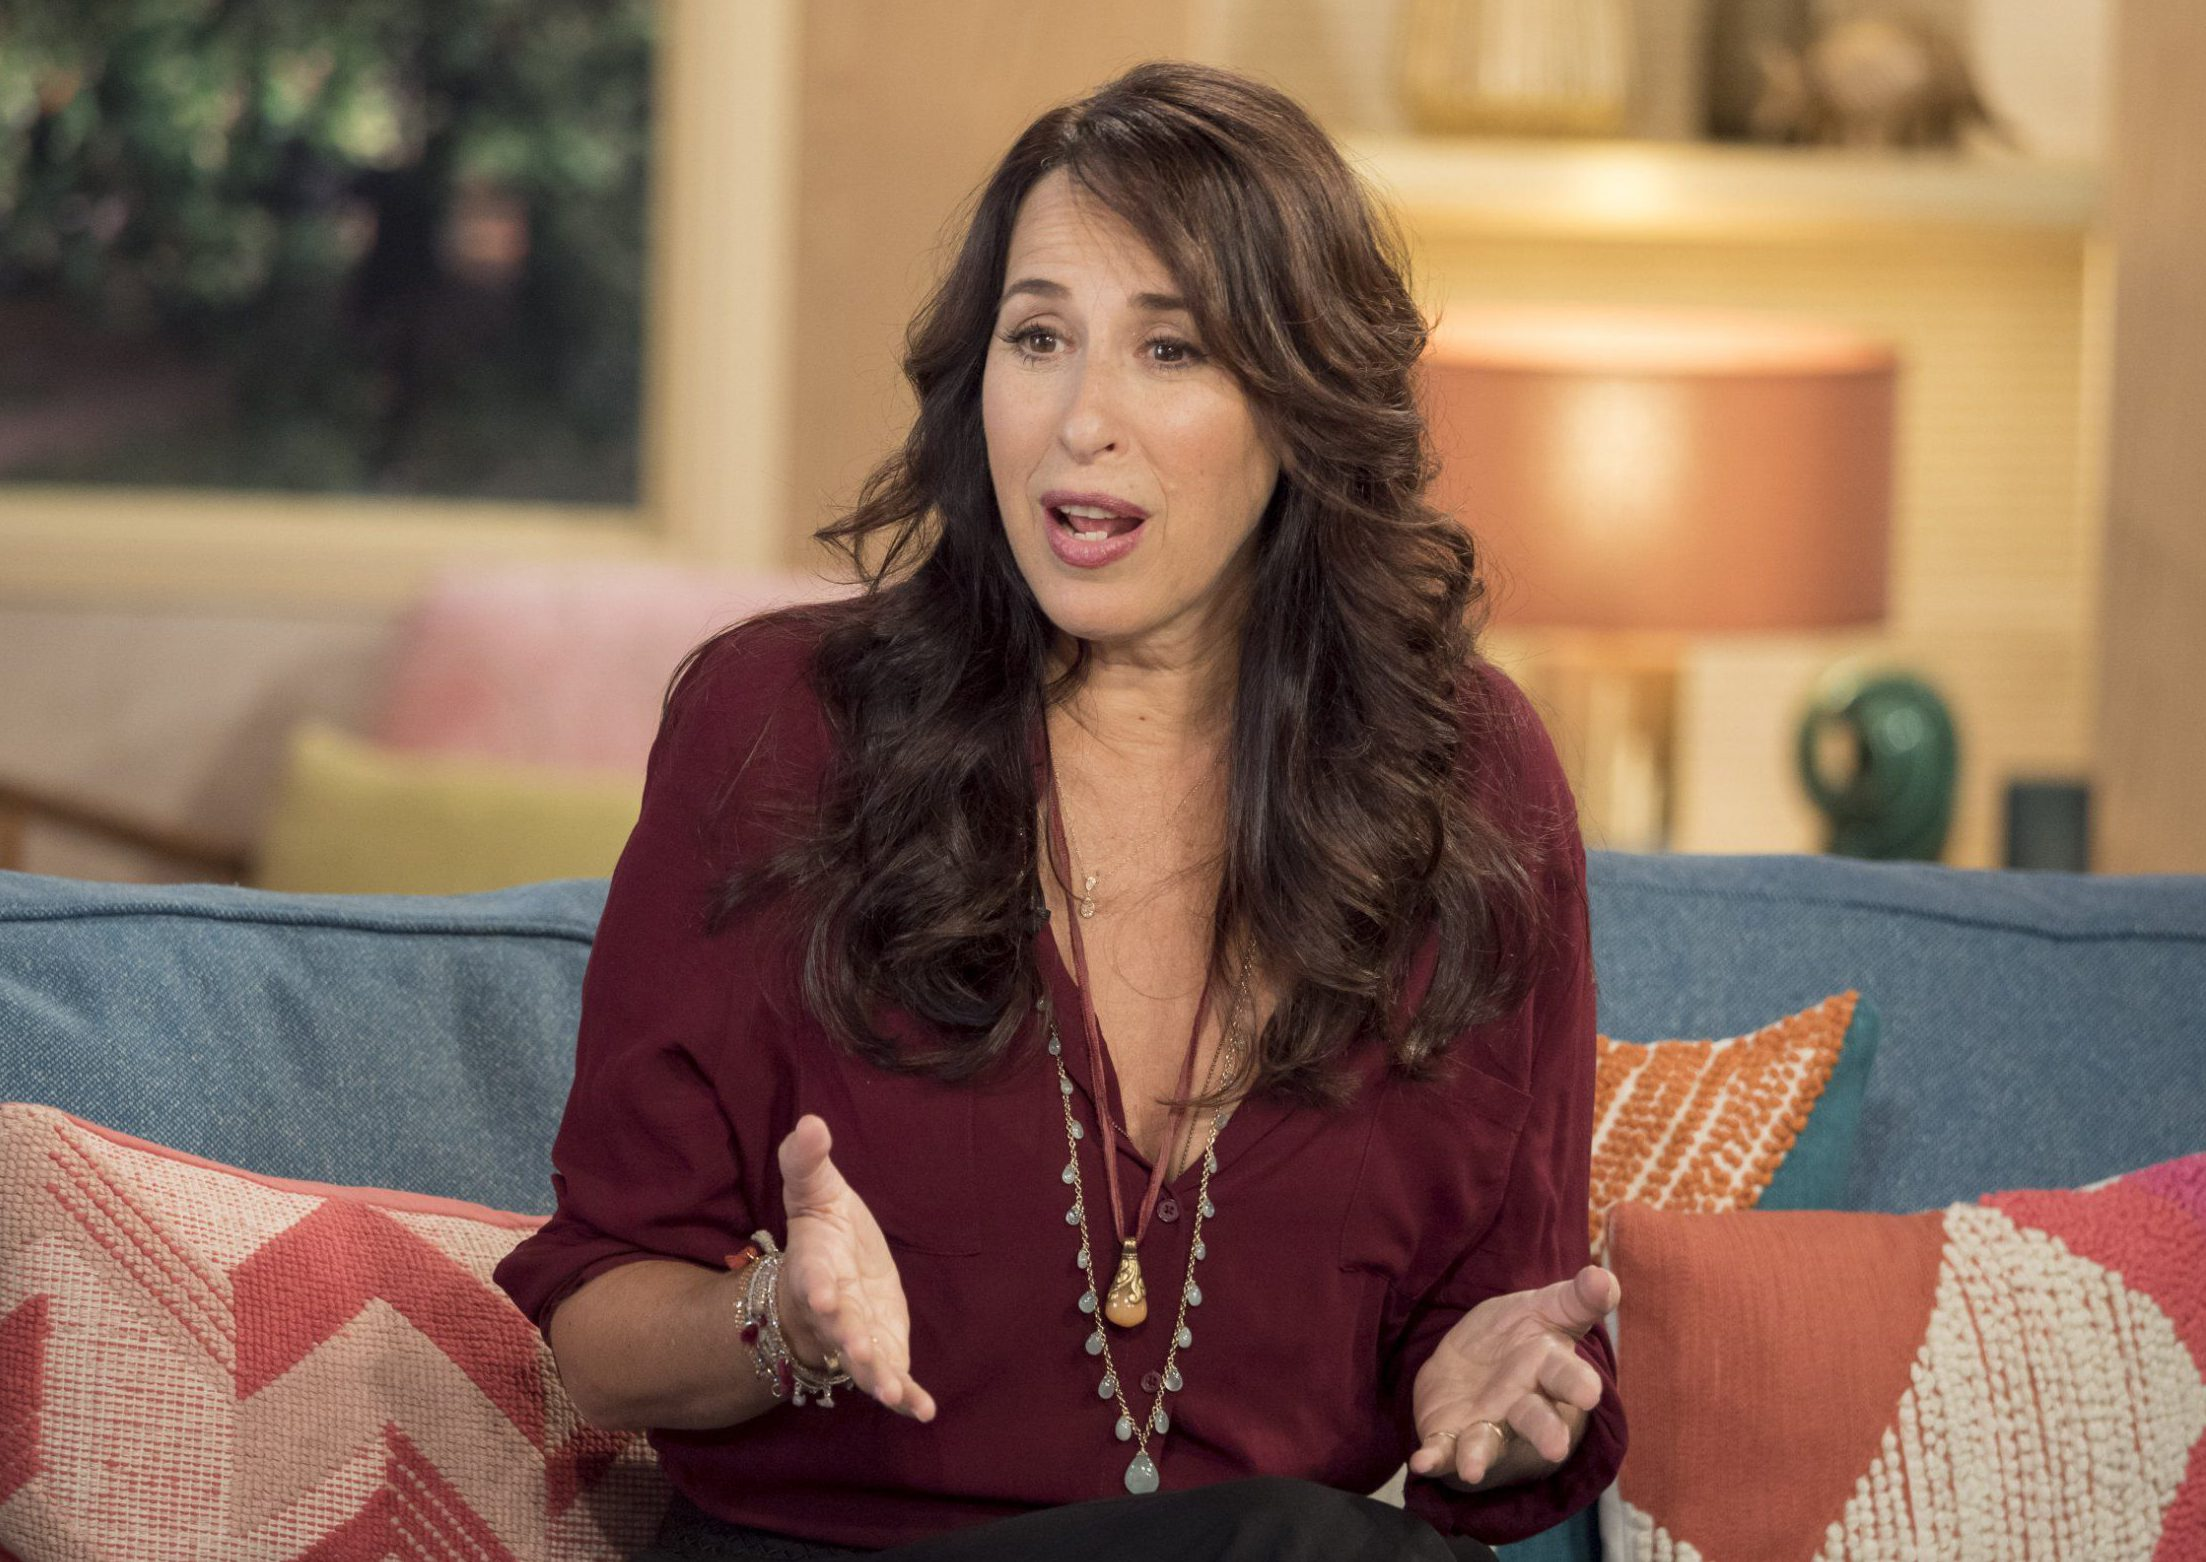 EDITORIAL USE ONLY. NO MERCHANDISING. IN US EXCLUSIVE RATES APPLY Mandatory Credit: Photo by Ken McKay/ITV/REX/Shutterstock (5838745cj) Maggie Wheeler 'This Morning' TV show, London, UK - 22 Aug 2016 'OH MY GAWD' - IT'S JANICE FROM FRIENDS! - When our next guest auditioned for a small role in a new sitcom, she had no idea what a global phenomenon it would become. And over twenty years since 'Friends' first hit our screens Maggie Wheeler - who played Janice - still remains a firm fan-favourite for her infamous catchphrase and distinctive laugh. Ahead of FriendsFest- today we're joined by Maggie as she gives us the inside scoop of life on set on one of the most popular sitcoms of all time and reveals the story behind that infamous laugh.